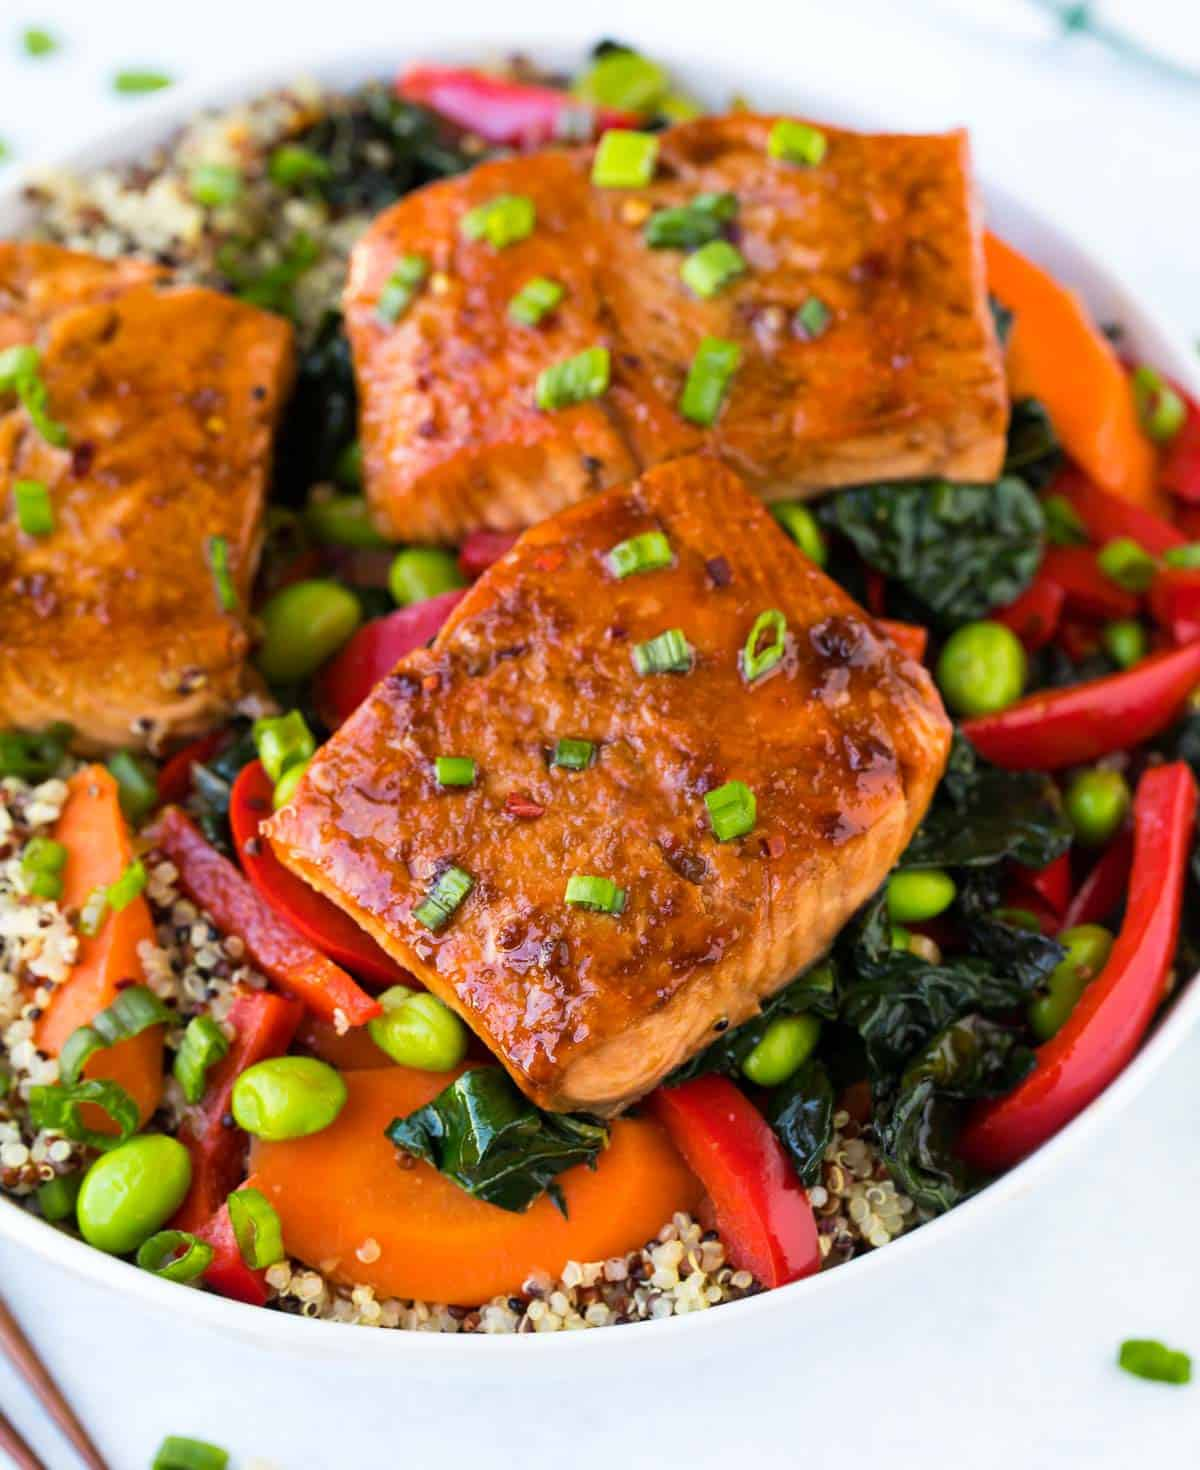 Teriyaki Salmon Bowl with Quinoa, Kale, and Fresh Veggies. This easy, healthy recipe will be one of your new favorite meal prep or dinner recipes! A quick, tasty, protein-packed dinner or lunch.